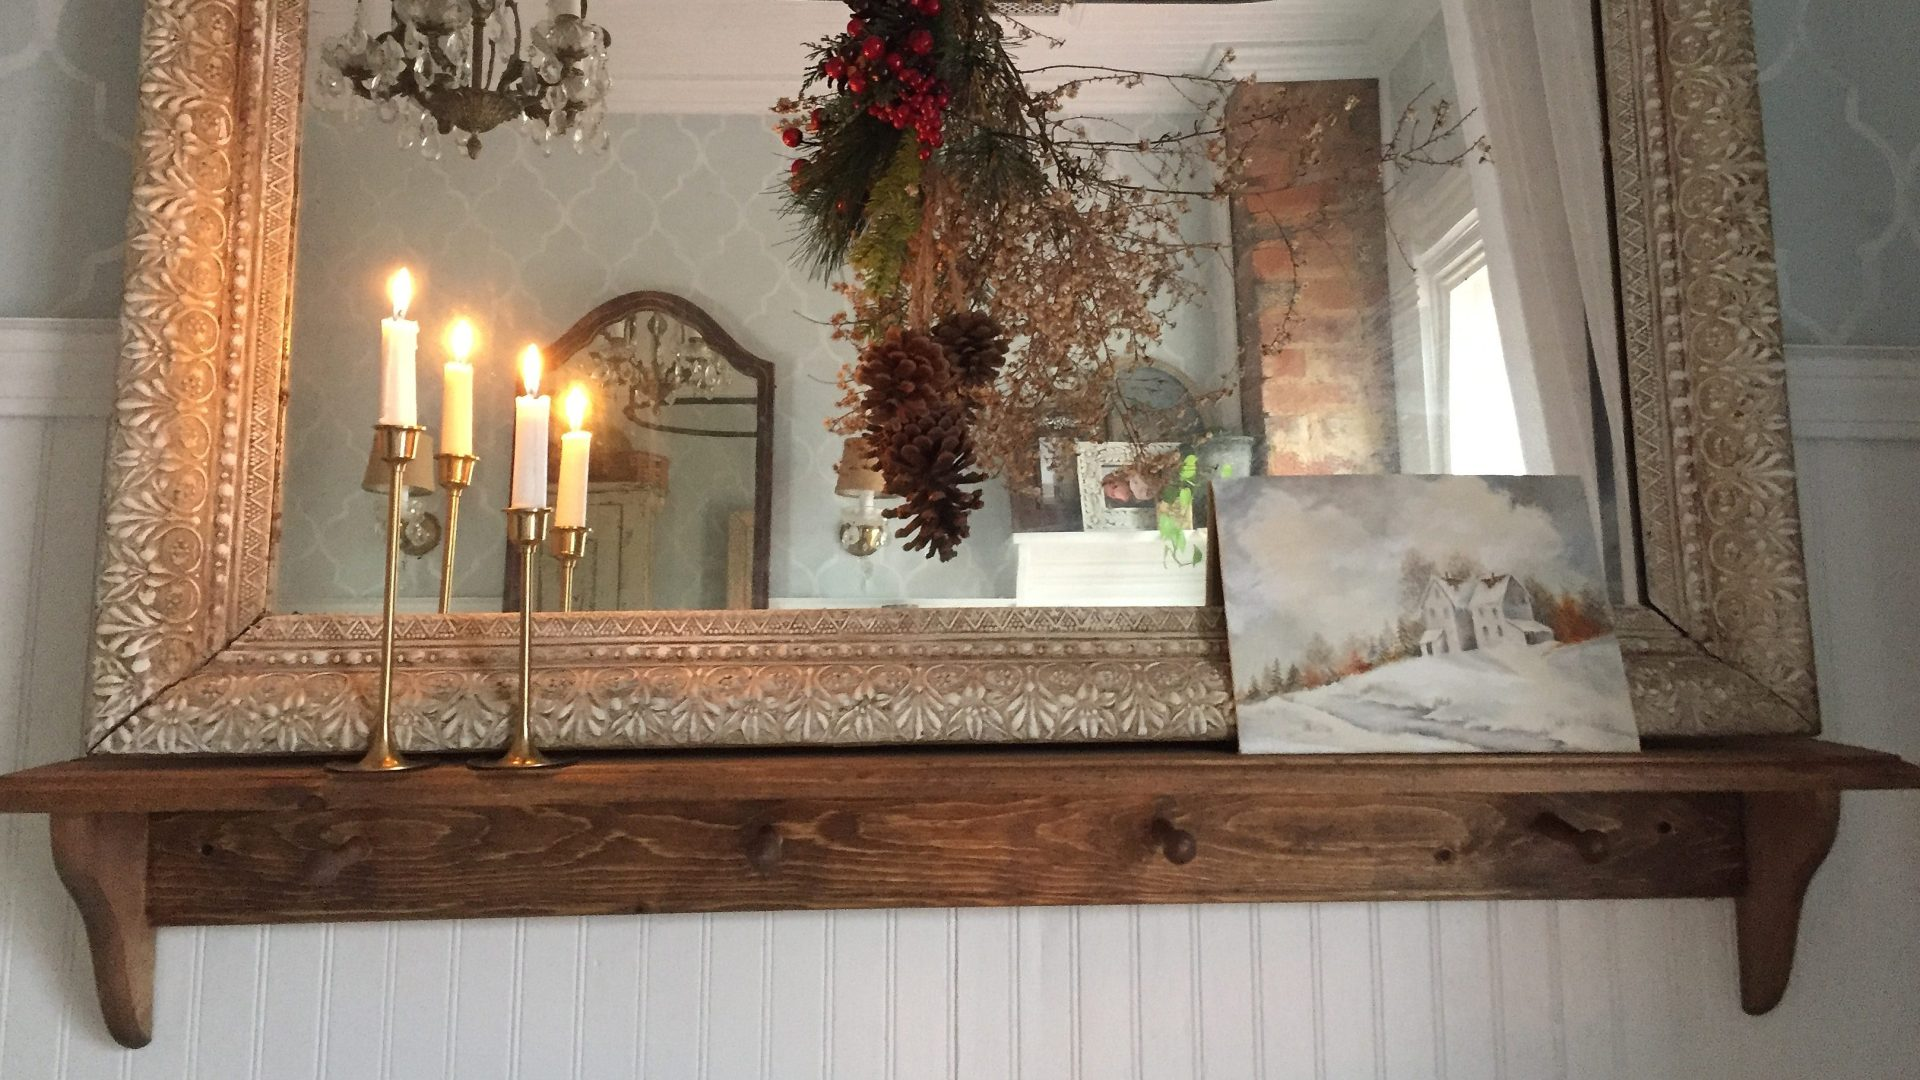 Unexpected Christmas Touches Around the Farmhouse